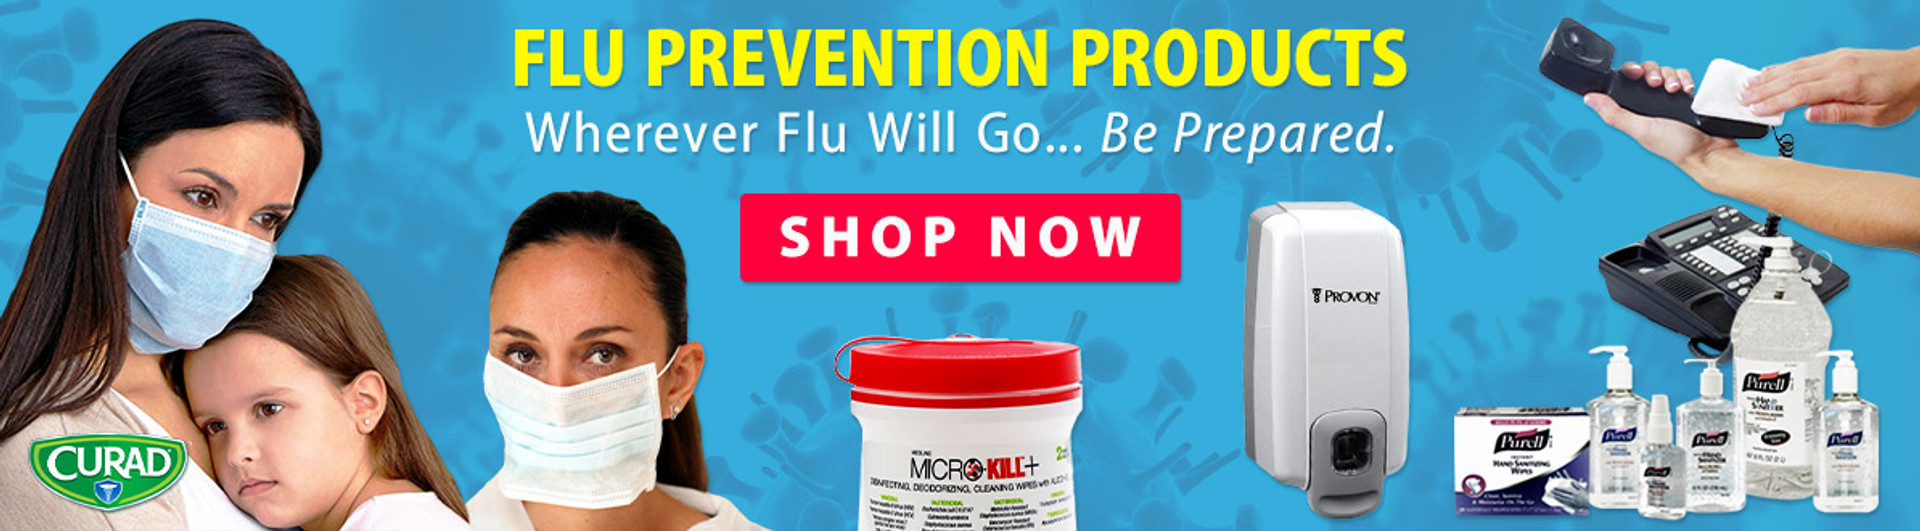 flu prevention products